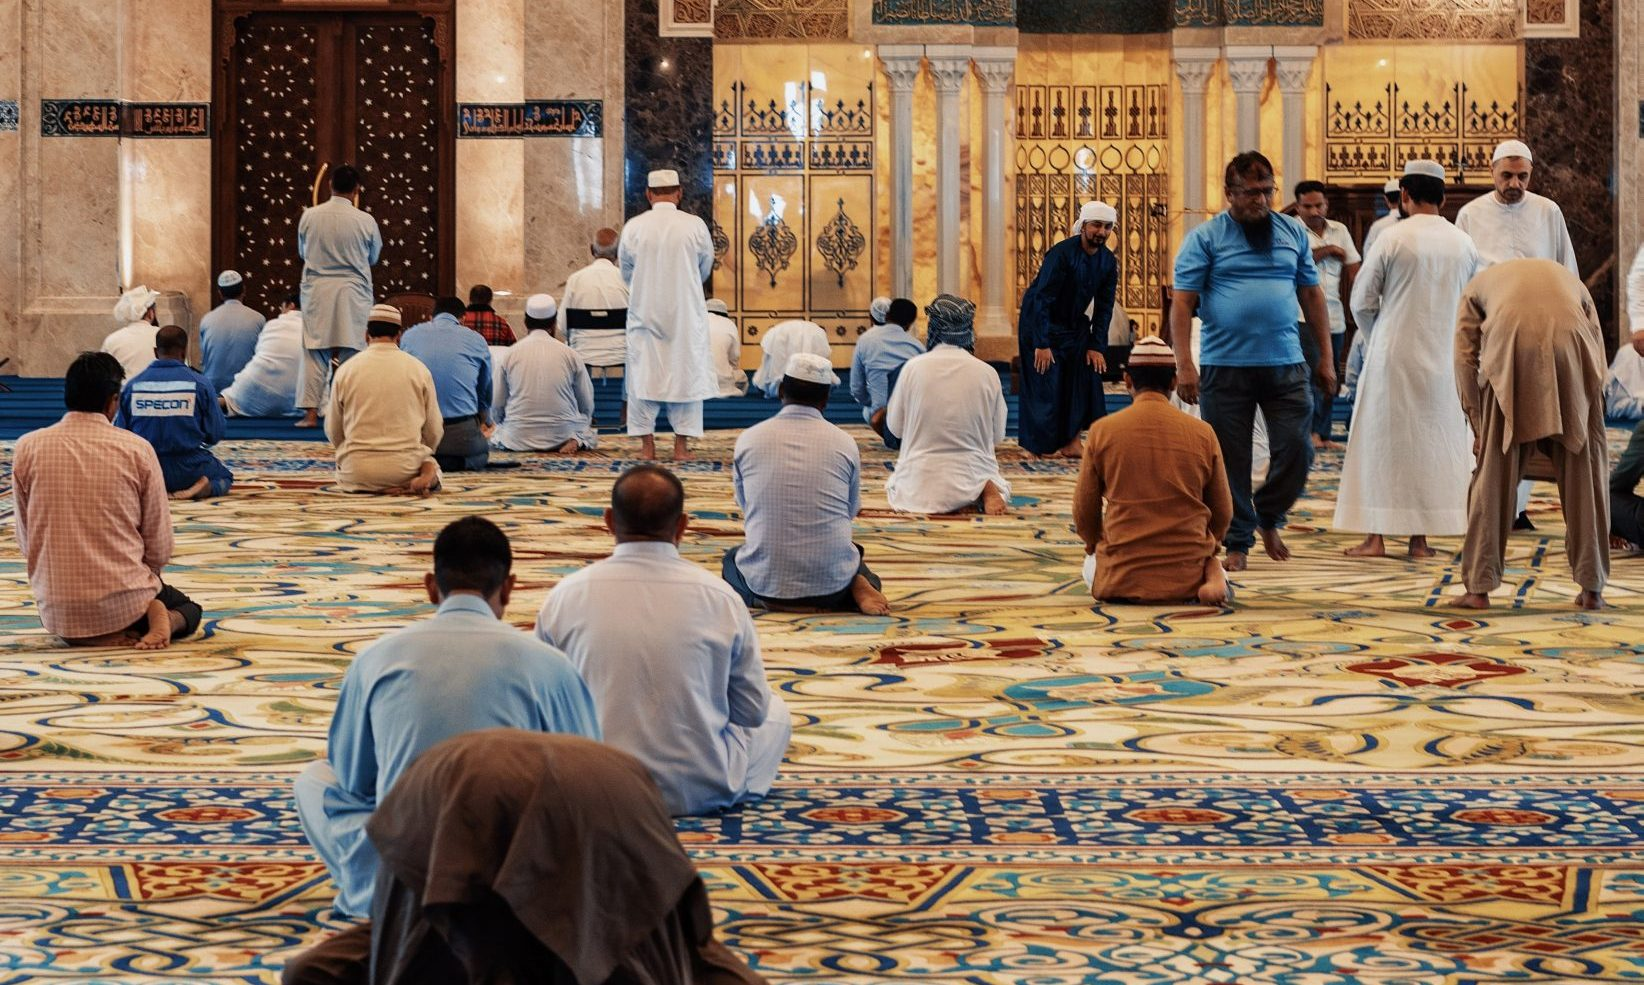 men kneeling and bowing inside building